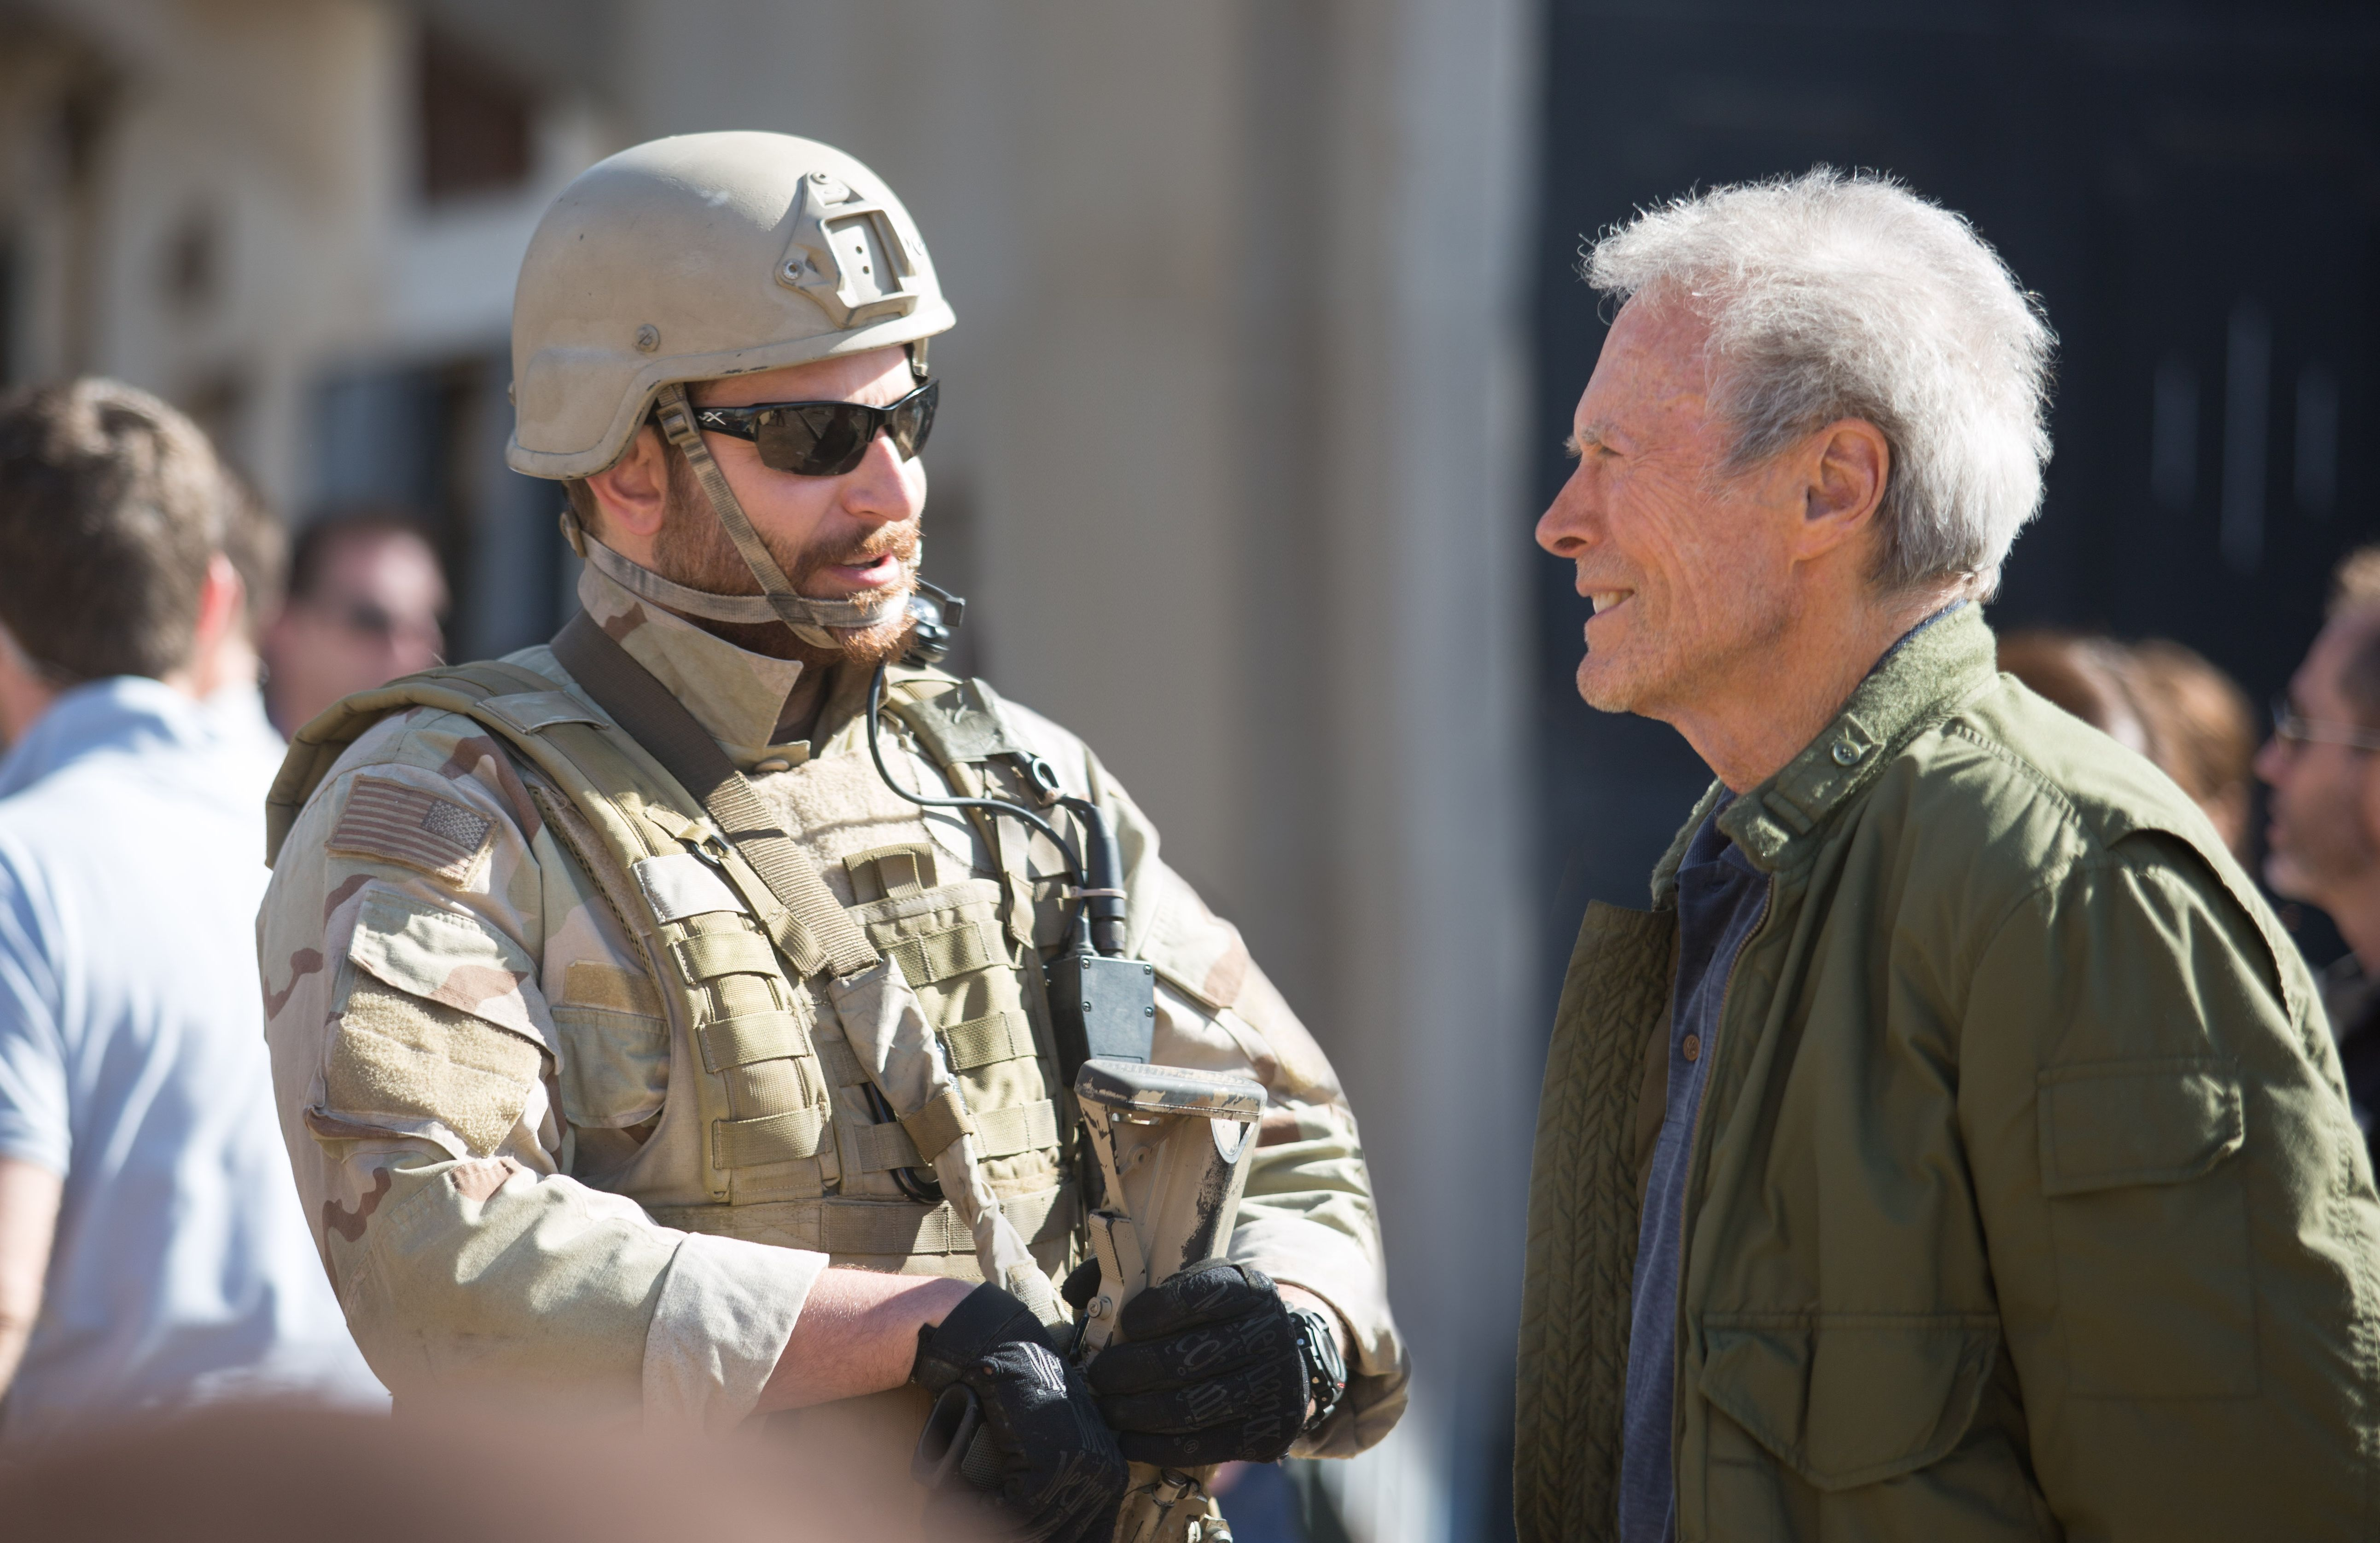 Clint+Eastwood+-+Bradley+Cooper+In+Talks+To+Direct+A+Star+Is+Born